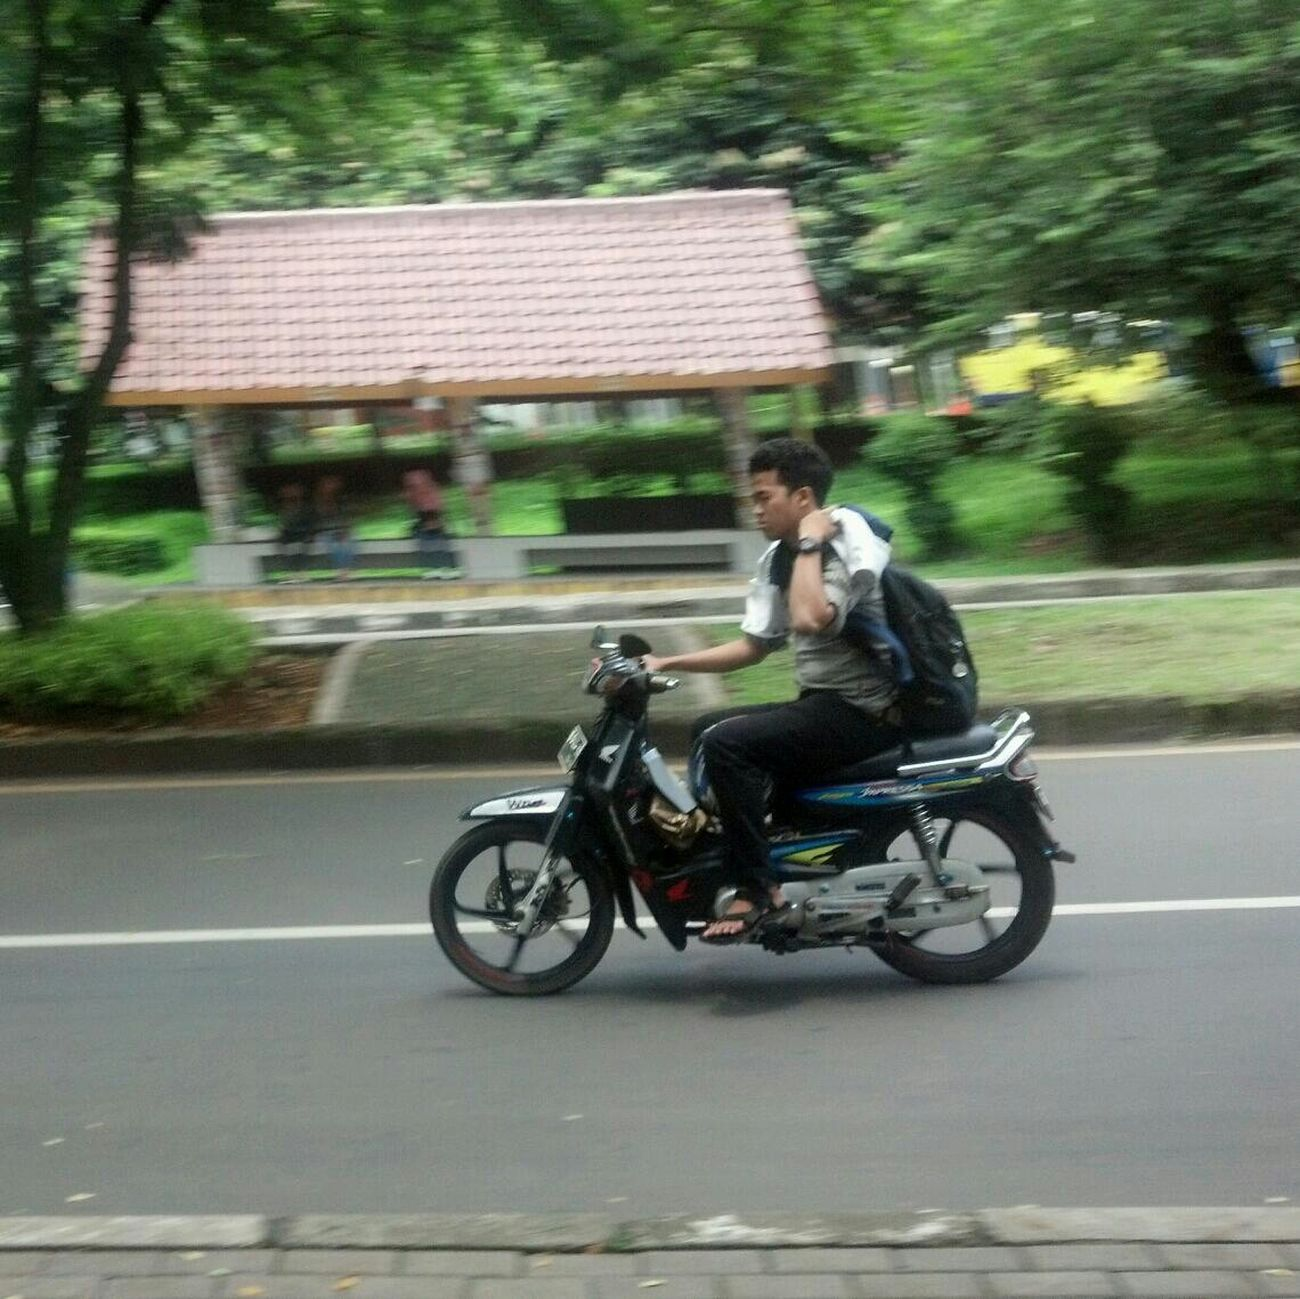 Mobile Photography Panning ID-andrography Android Photography